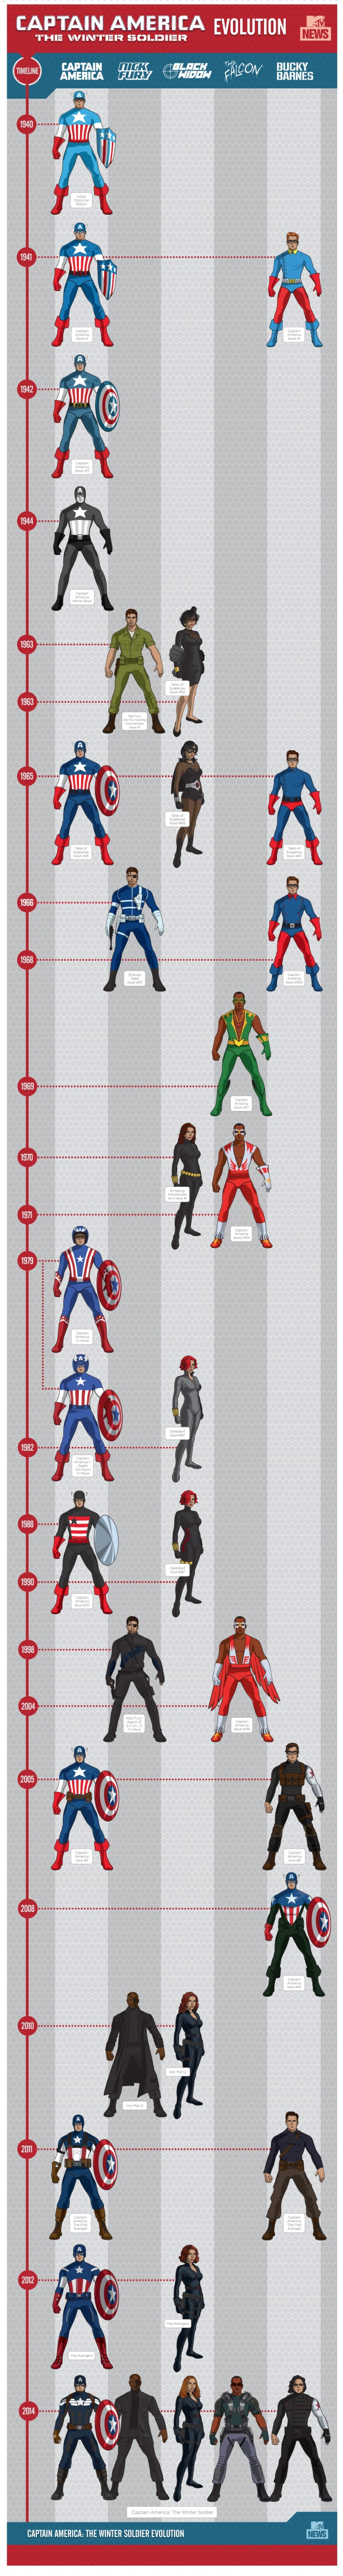 CapInfographic